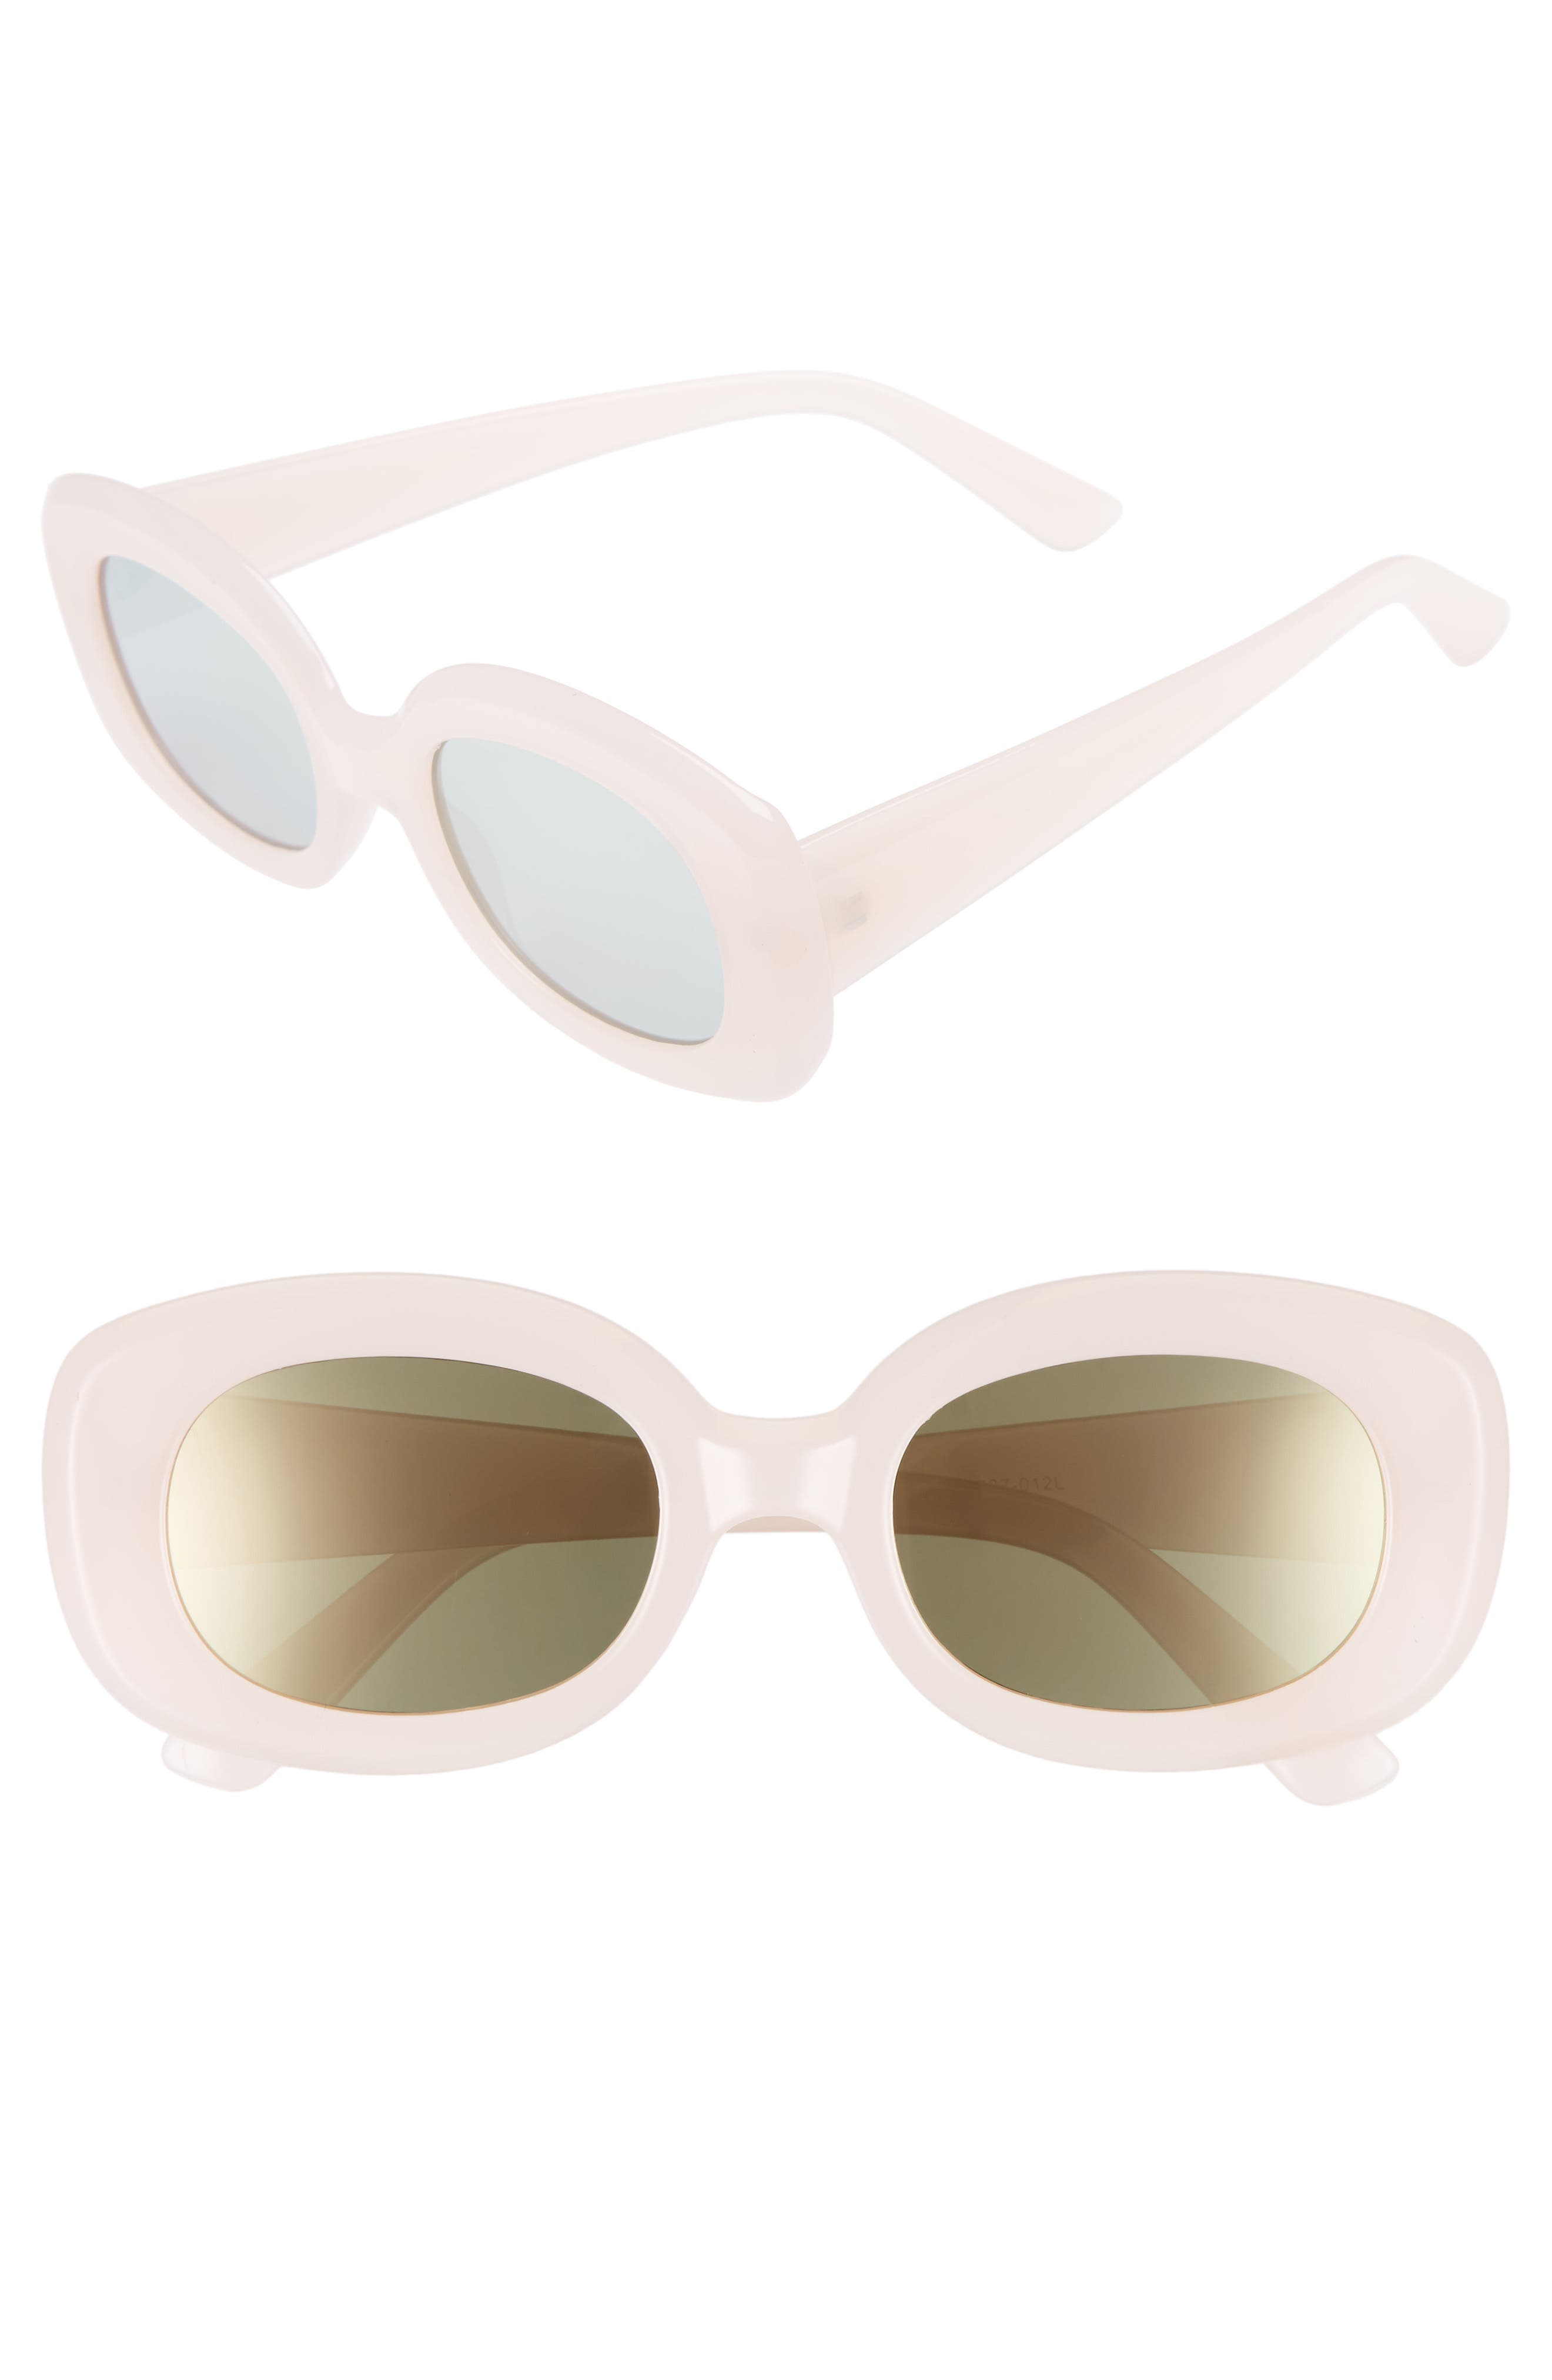 48mm Small Square Sunglasses,                         Main,                         color, PINK